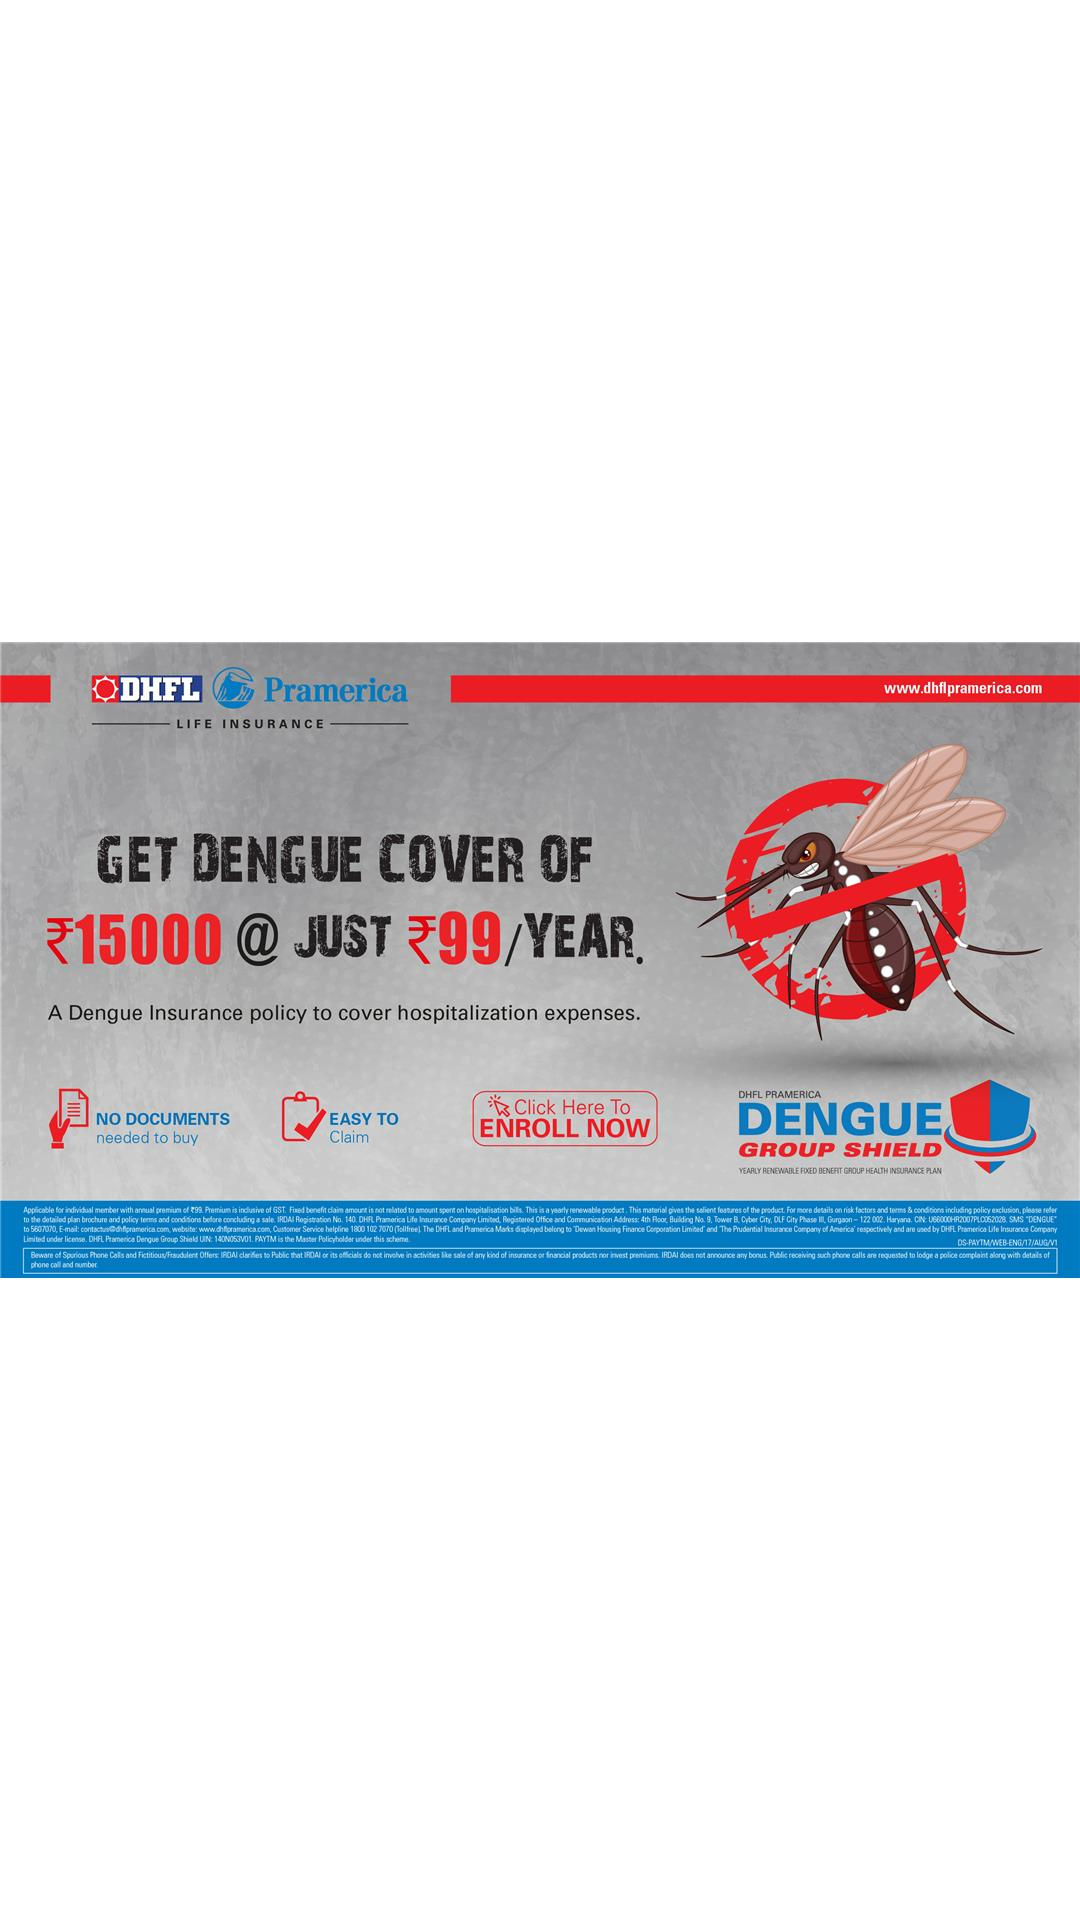 https://assetscdn1.paytm.com/images/catalog/product/I/IN/INSDENGUE-SHIELDHFL6424721ED1A843/0x1920/70/5.jpg